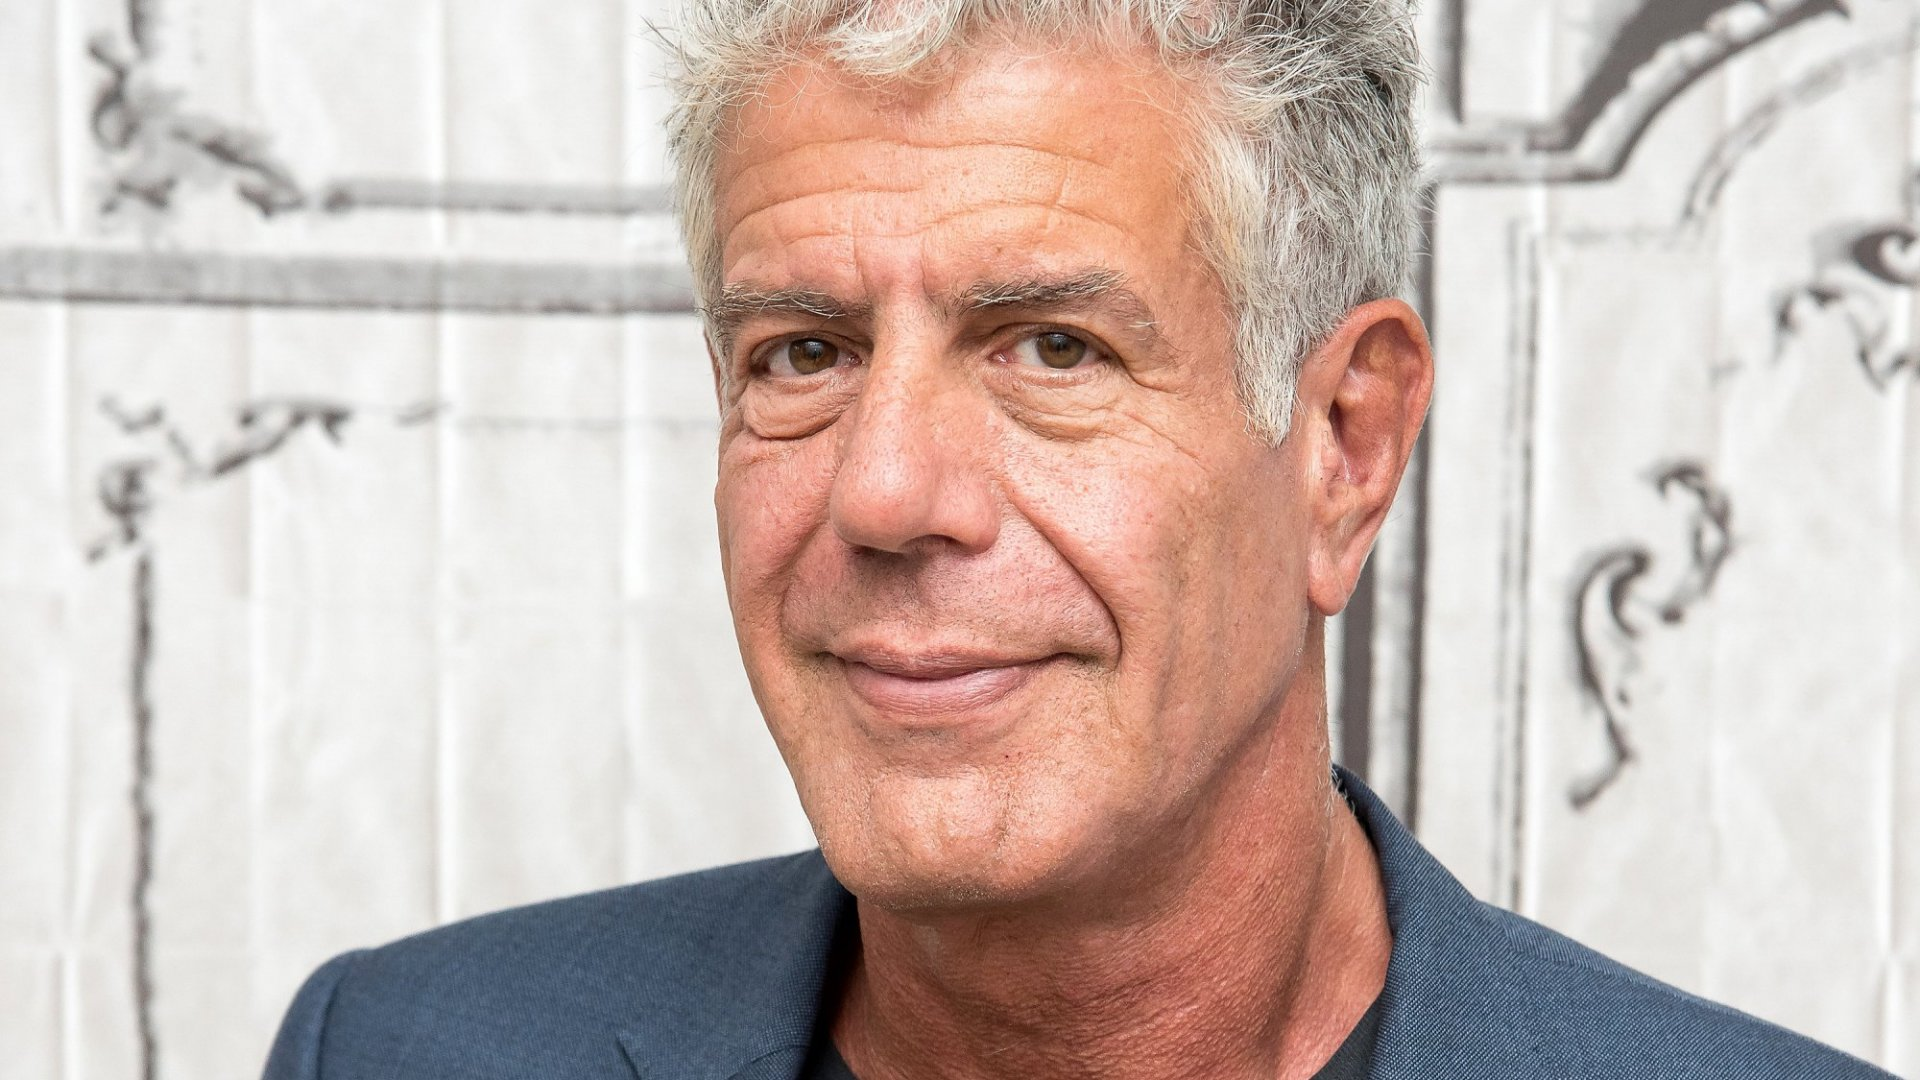 Feeling Stuck? The Late Anthony Bourdain Shared Excellent Creative Advice